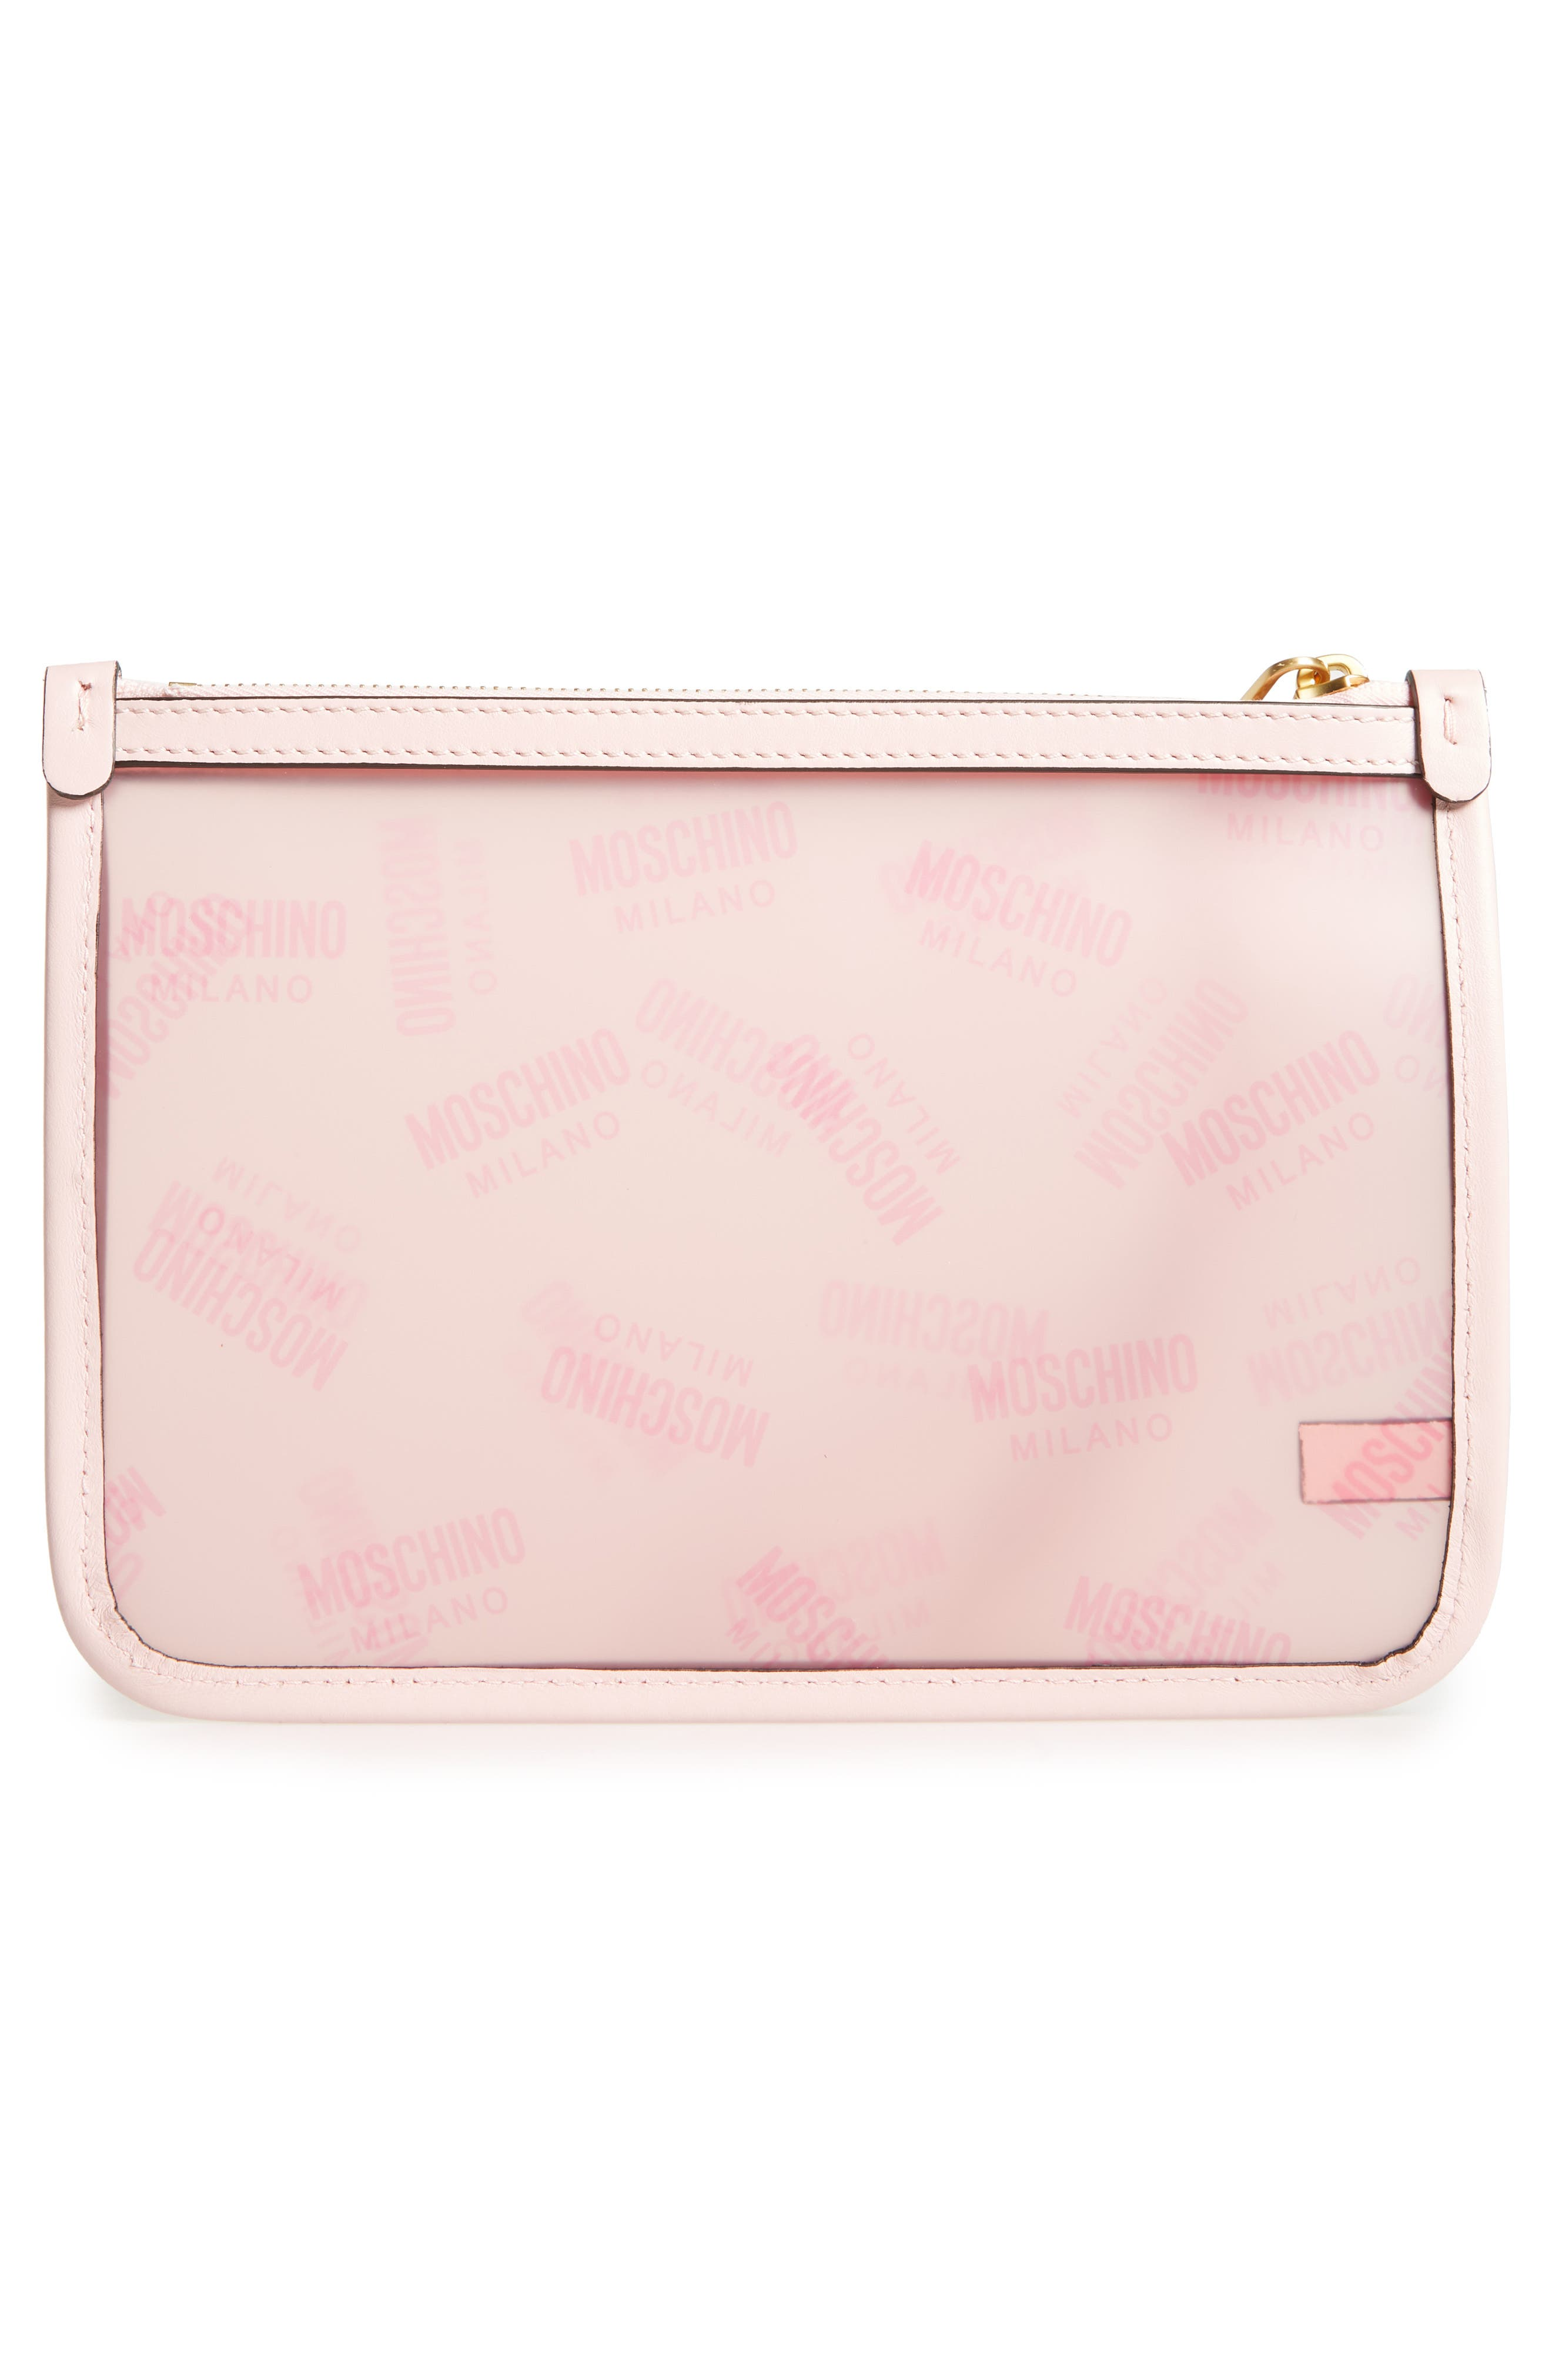 MOSCHINO, Transparent Logo Pouch, Alternate thumbnail 3, color, 683